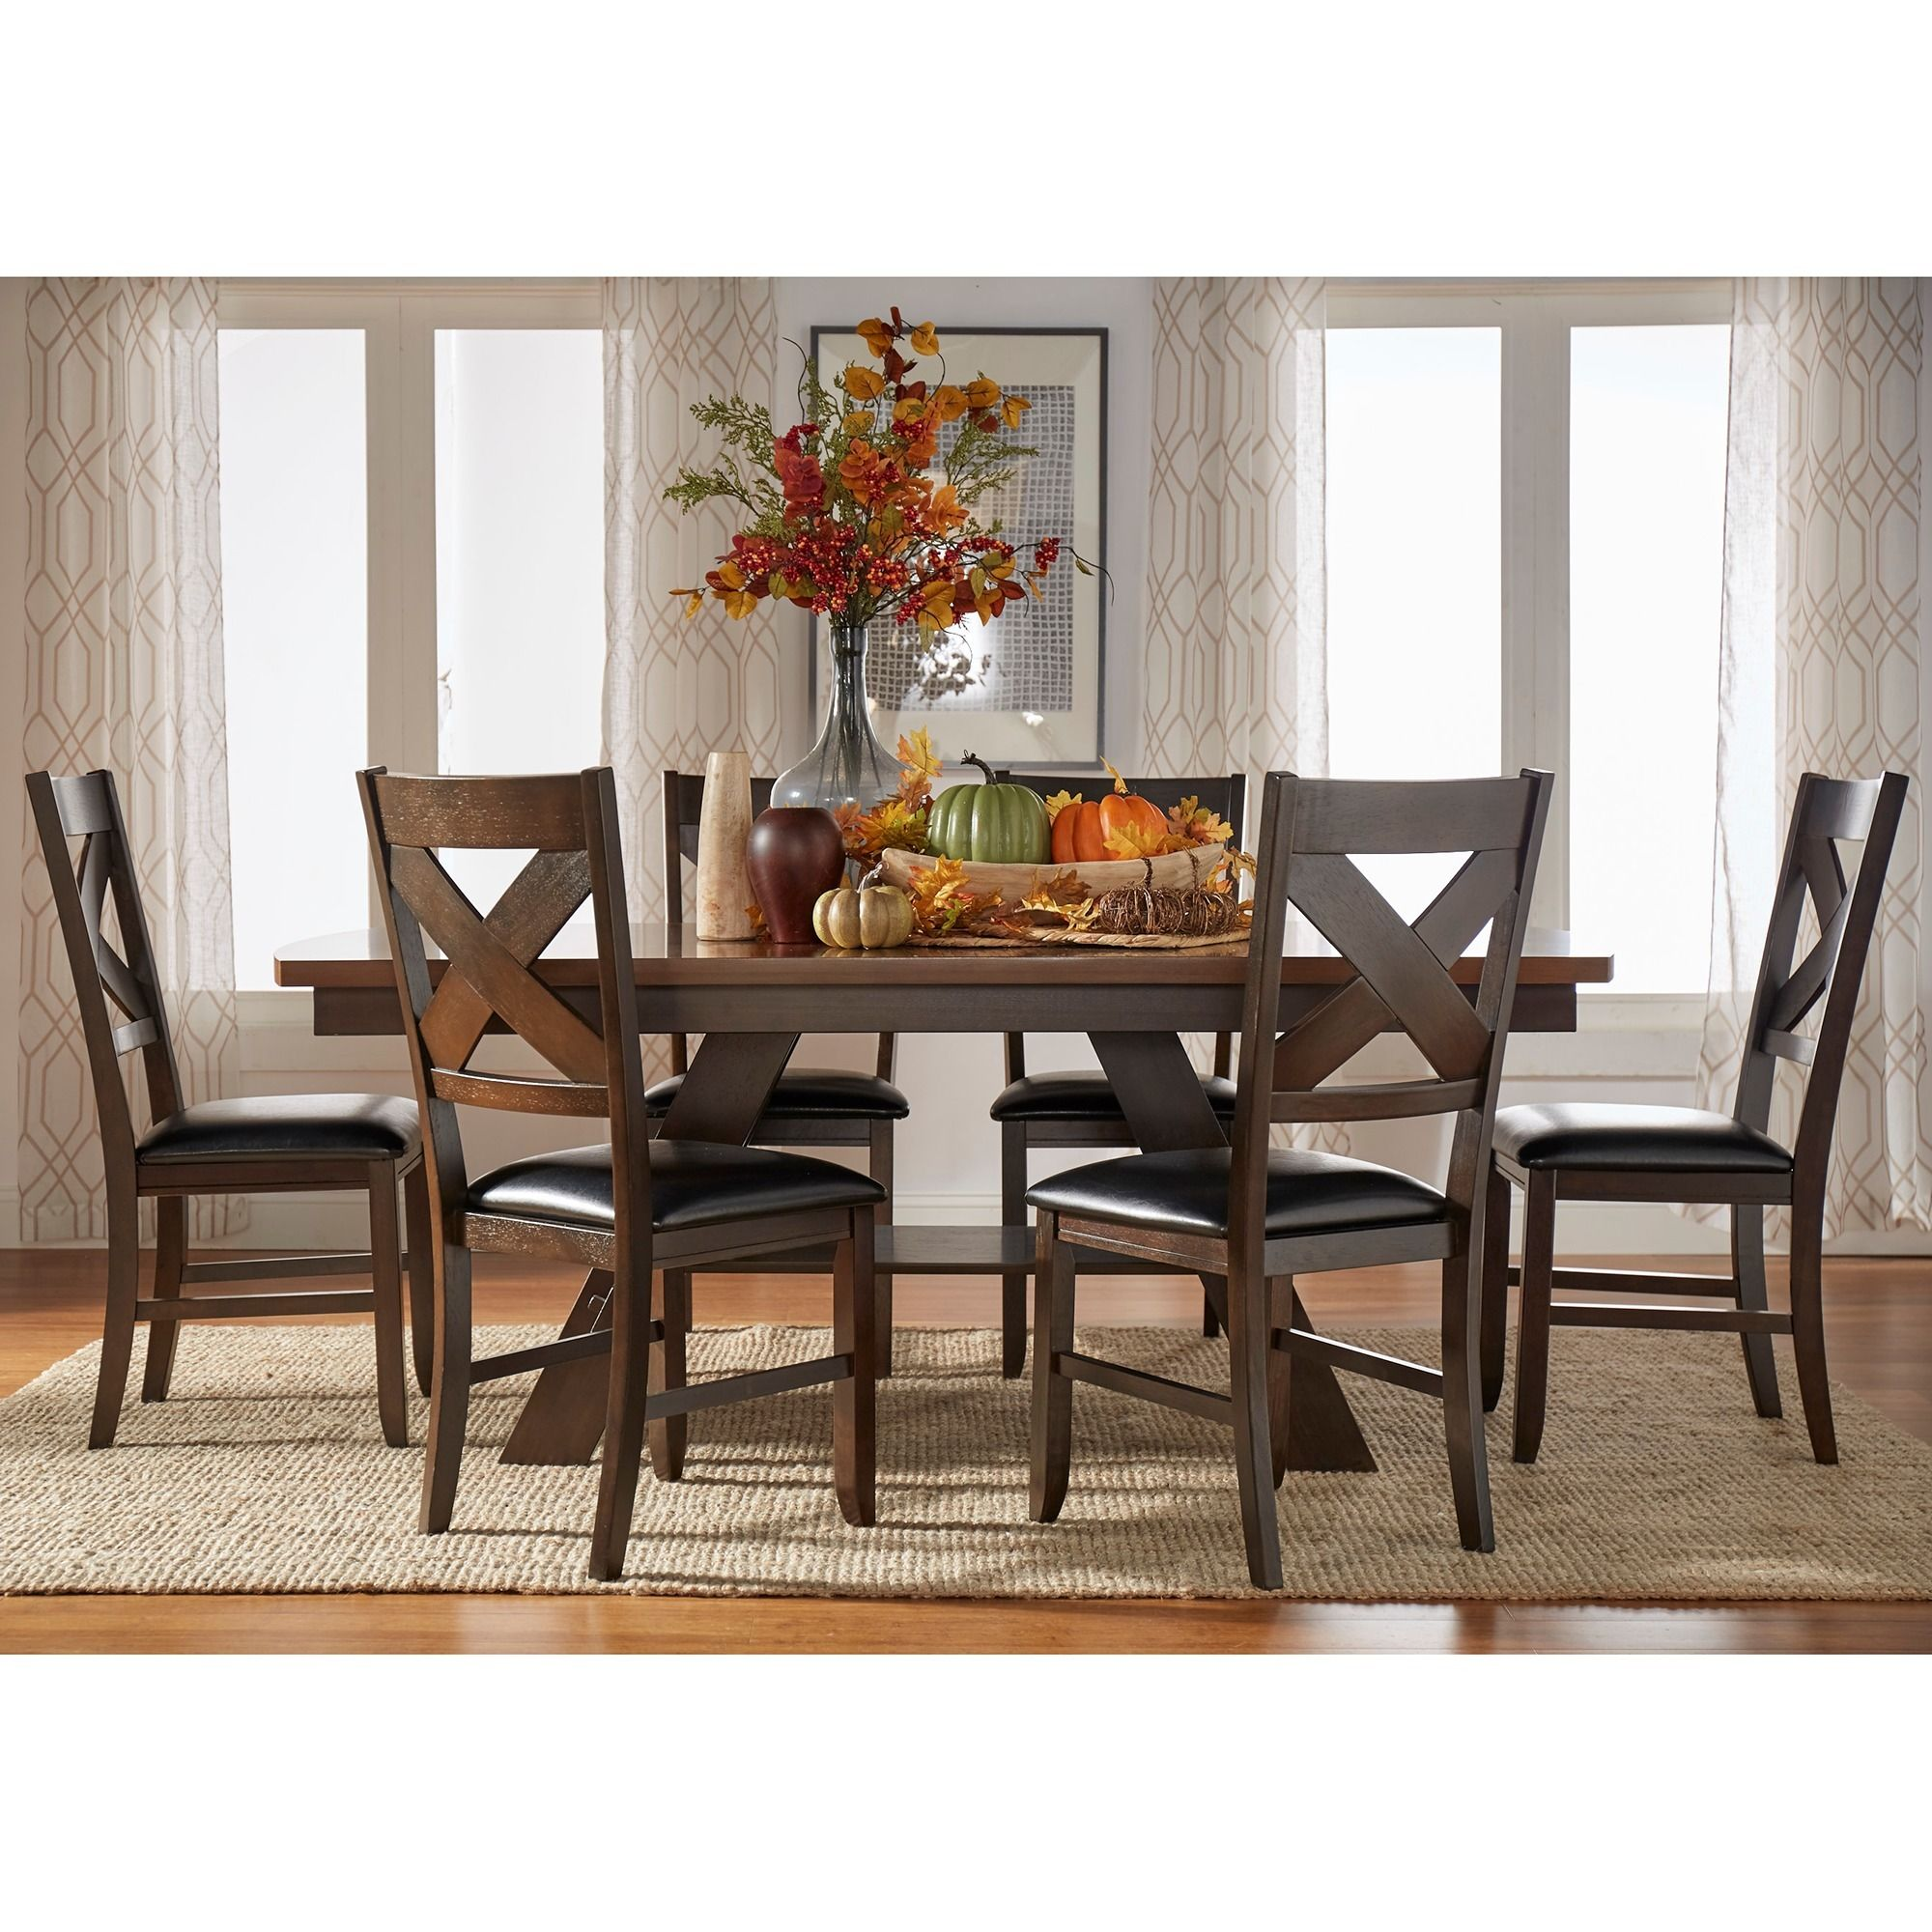 990 Acadia Dark Brown With Uv Coated Light Table Top 7 Piece Dining Set